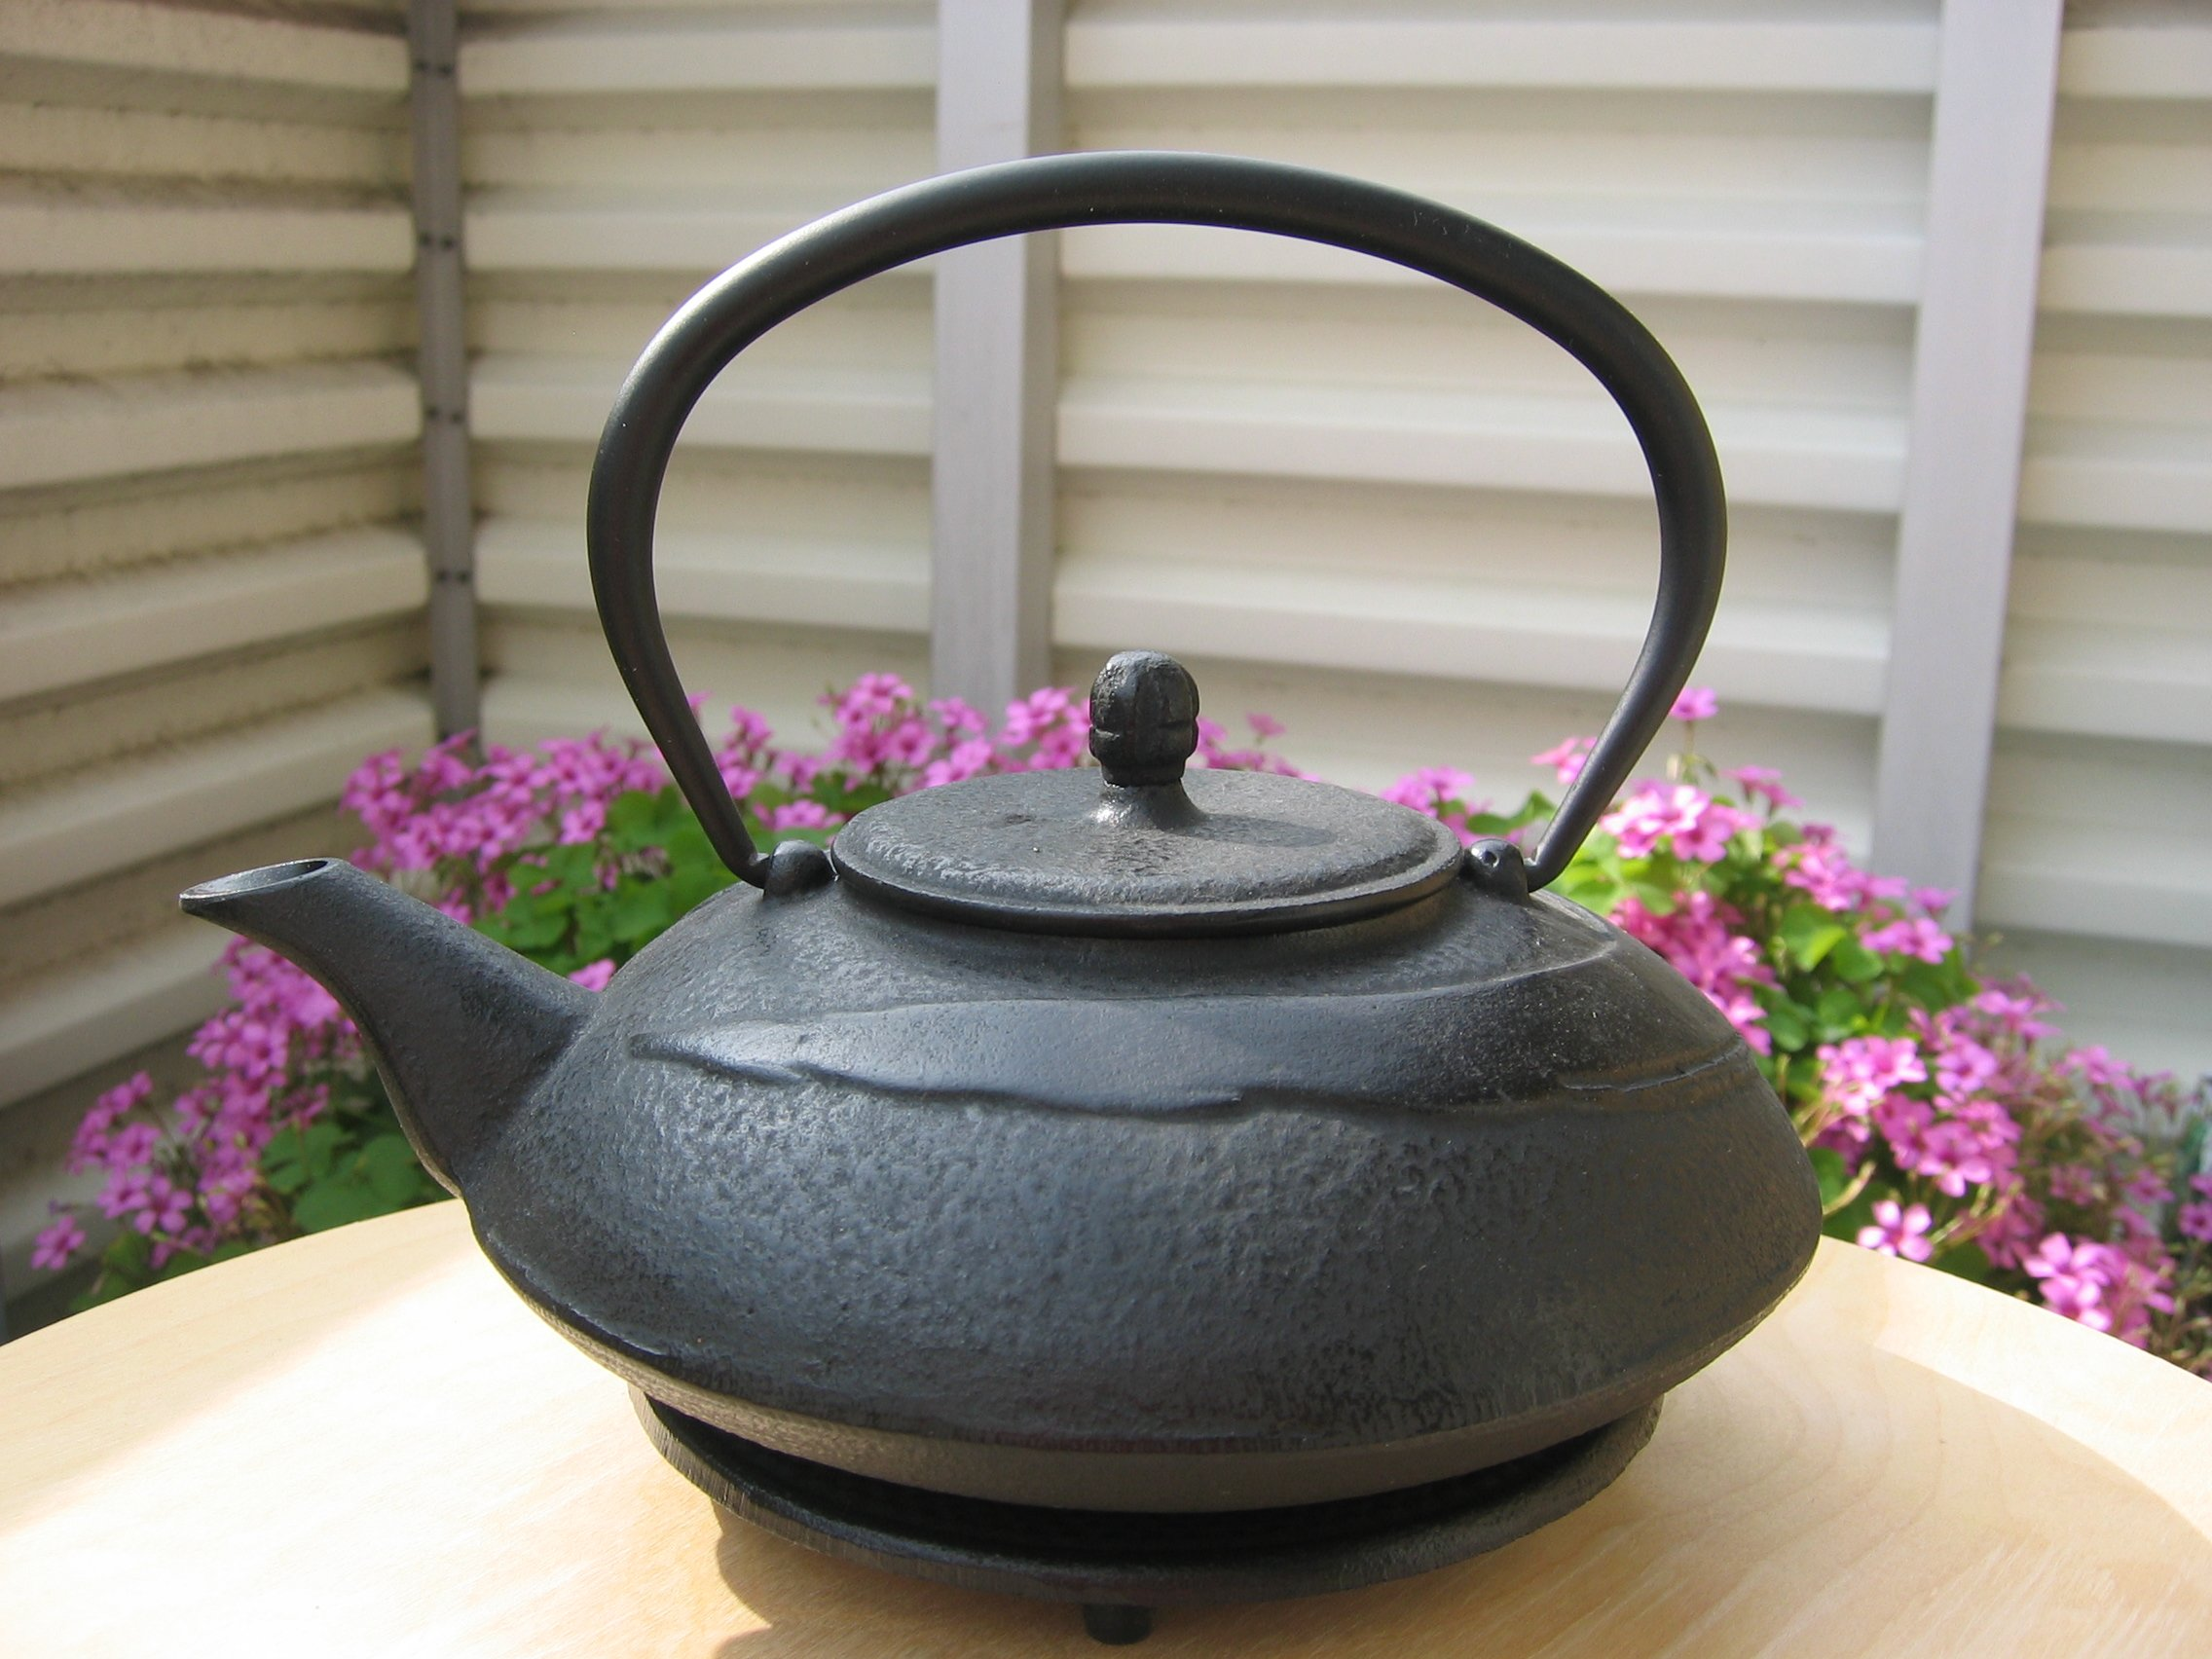 Japanese cast-iron teapot - Wikimedia Commons